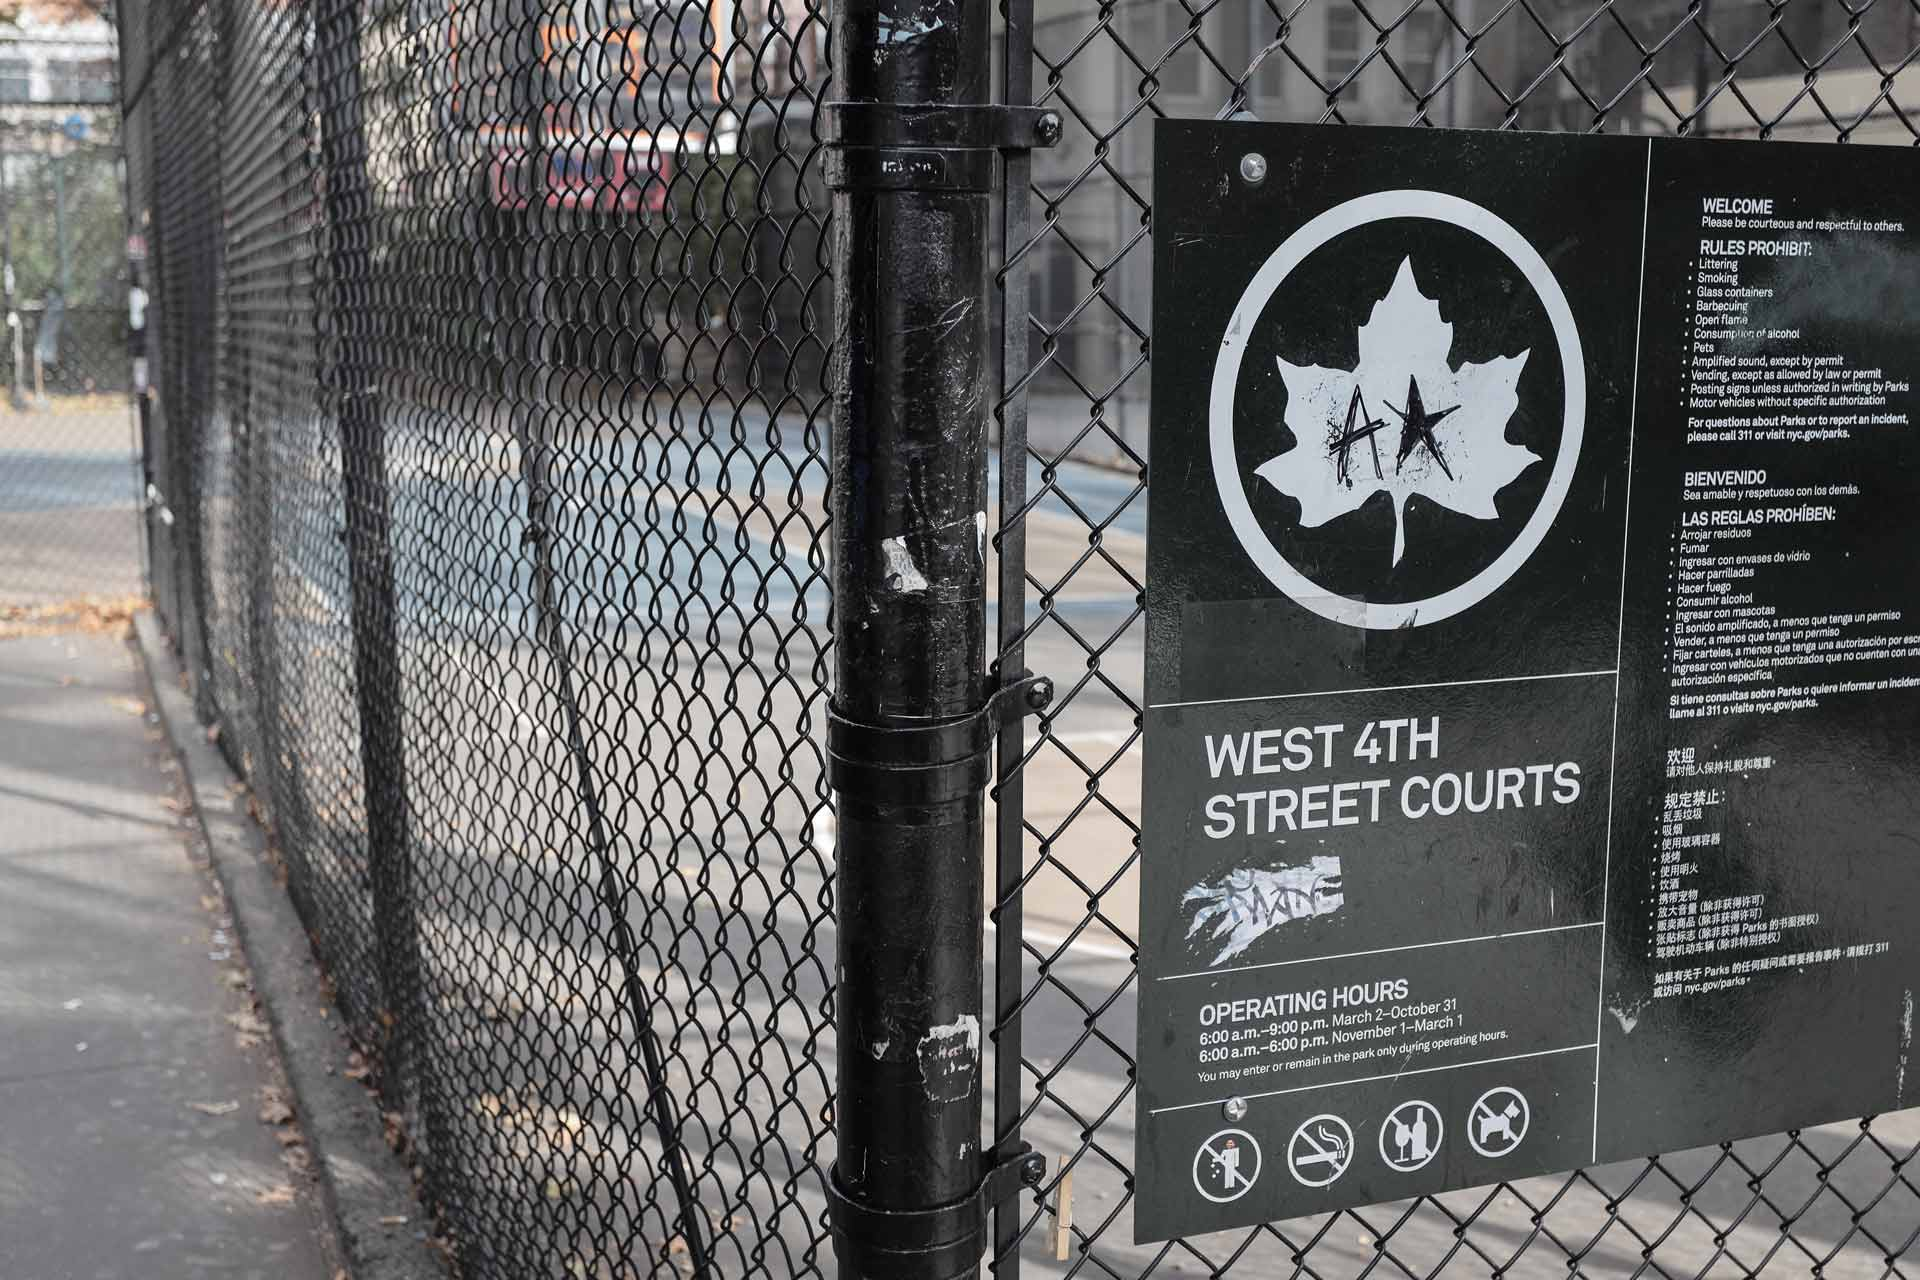 Pictures I've always dreamed-west-4th-street-courts-greenwich